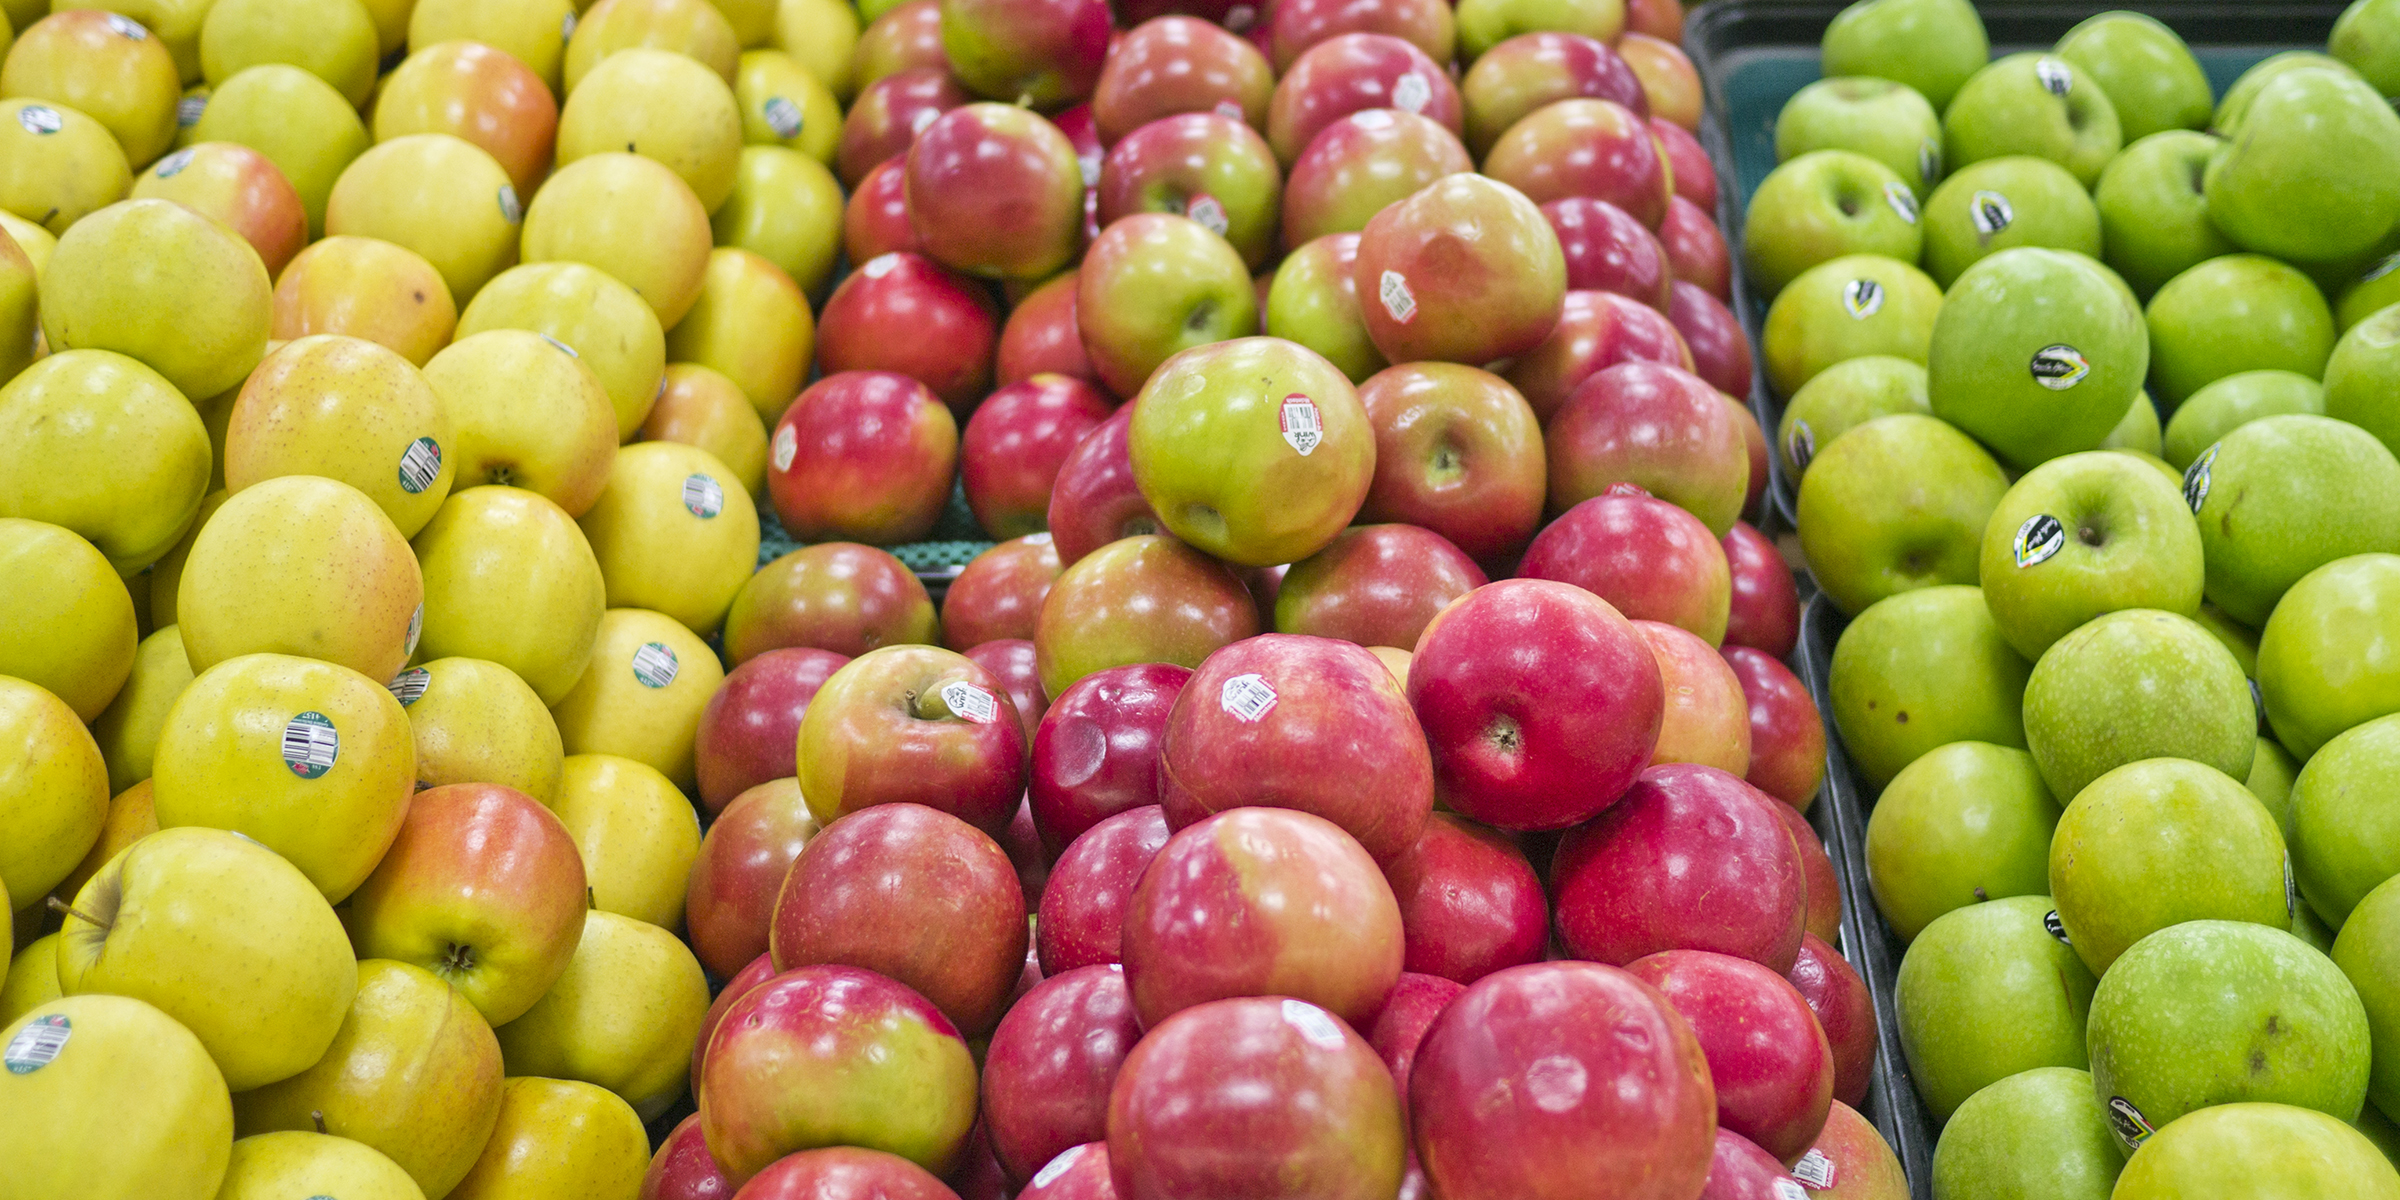 From Red Wine Applesauce Health And >> What Are The Best Apples To Use For Pies Cakes And Applesauce